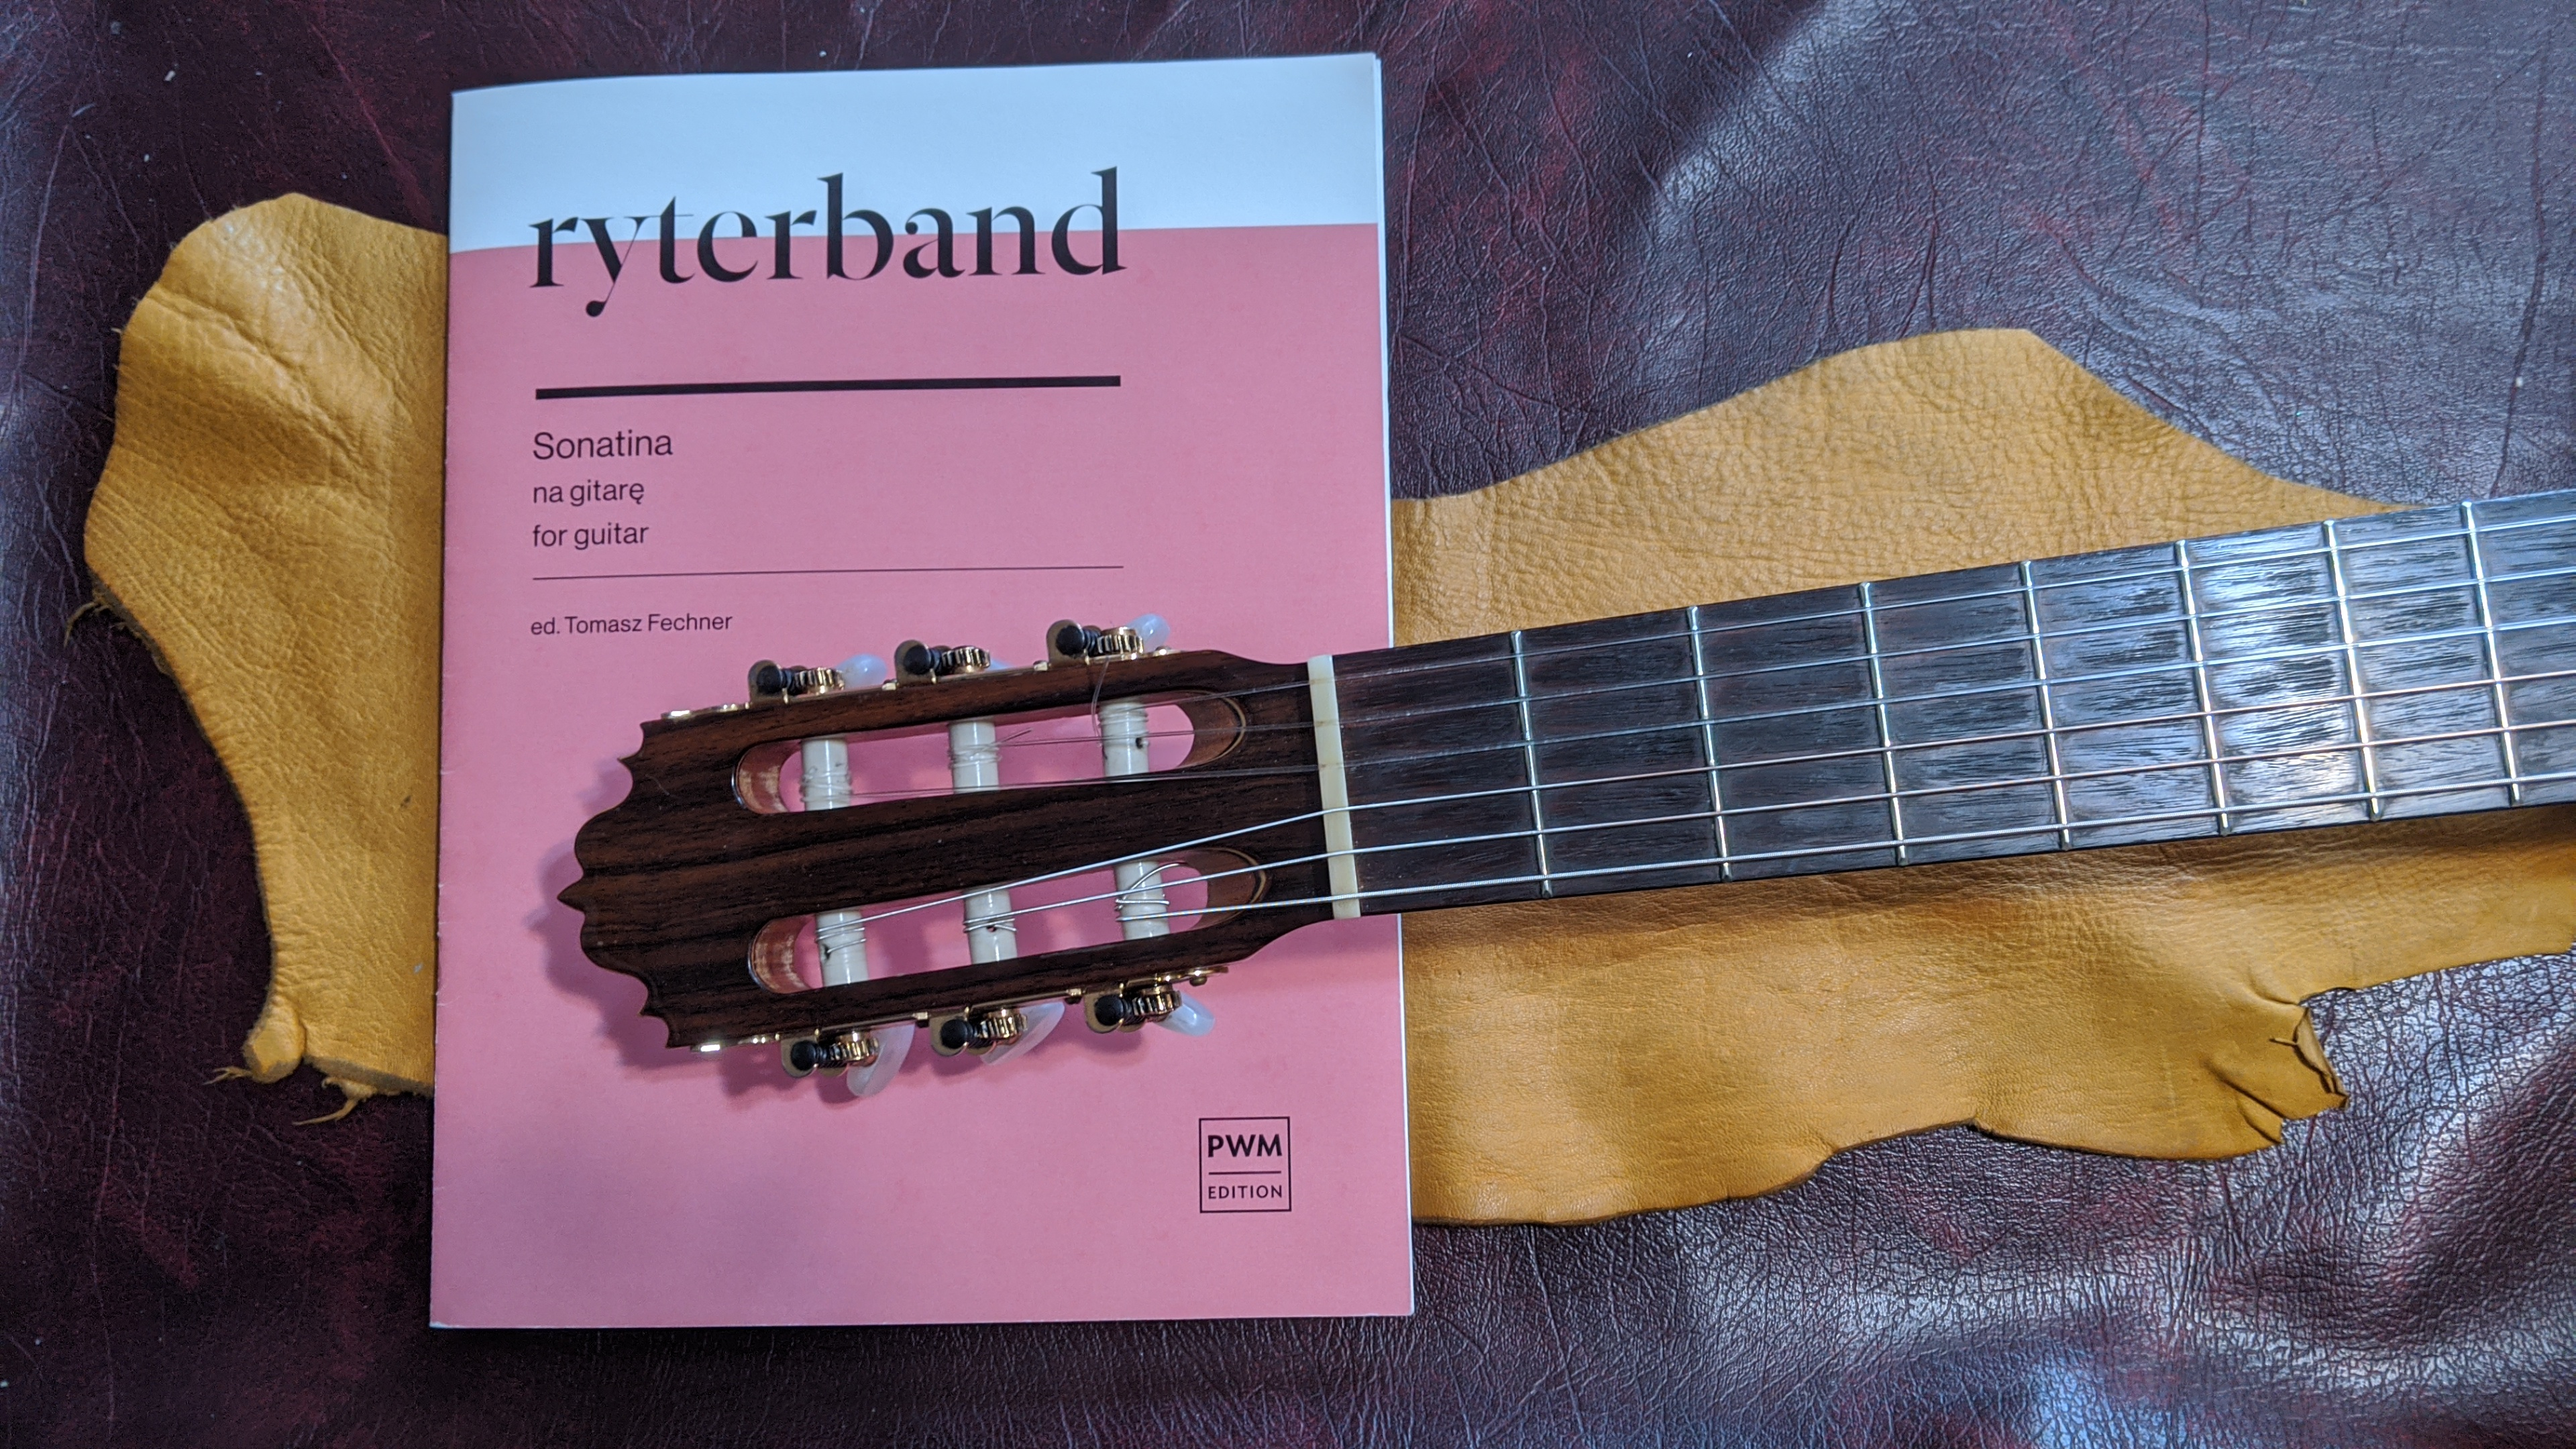 Roman Ryterband Sonatina for Guitar